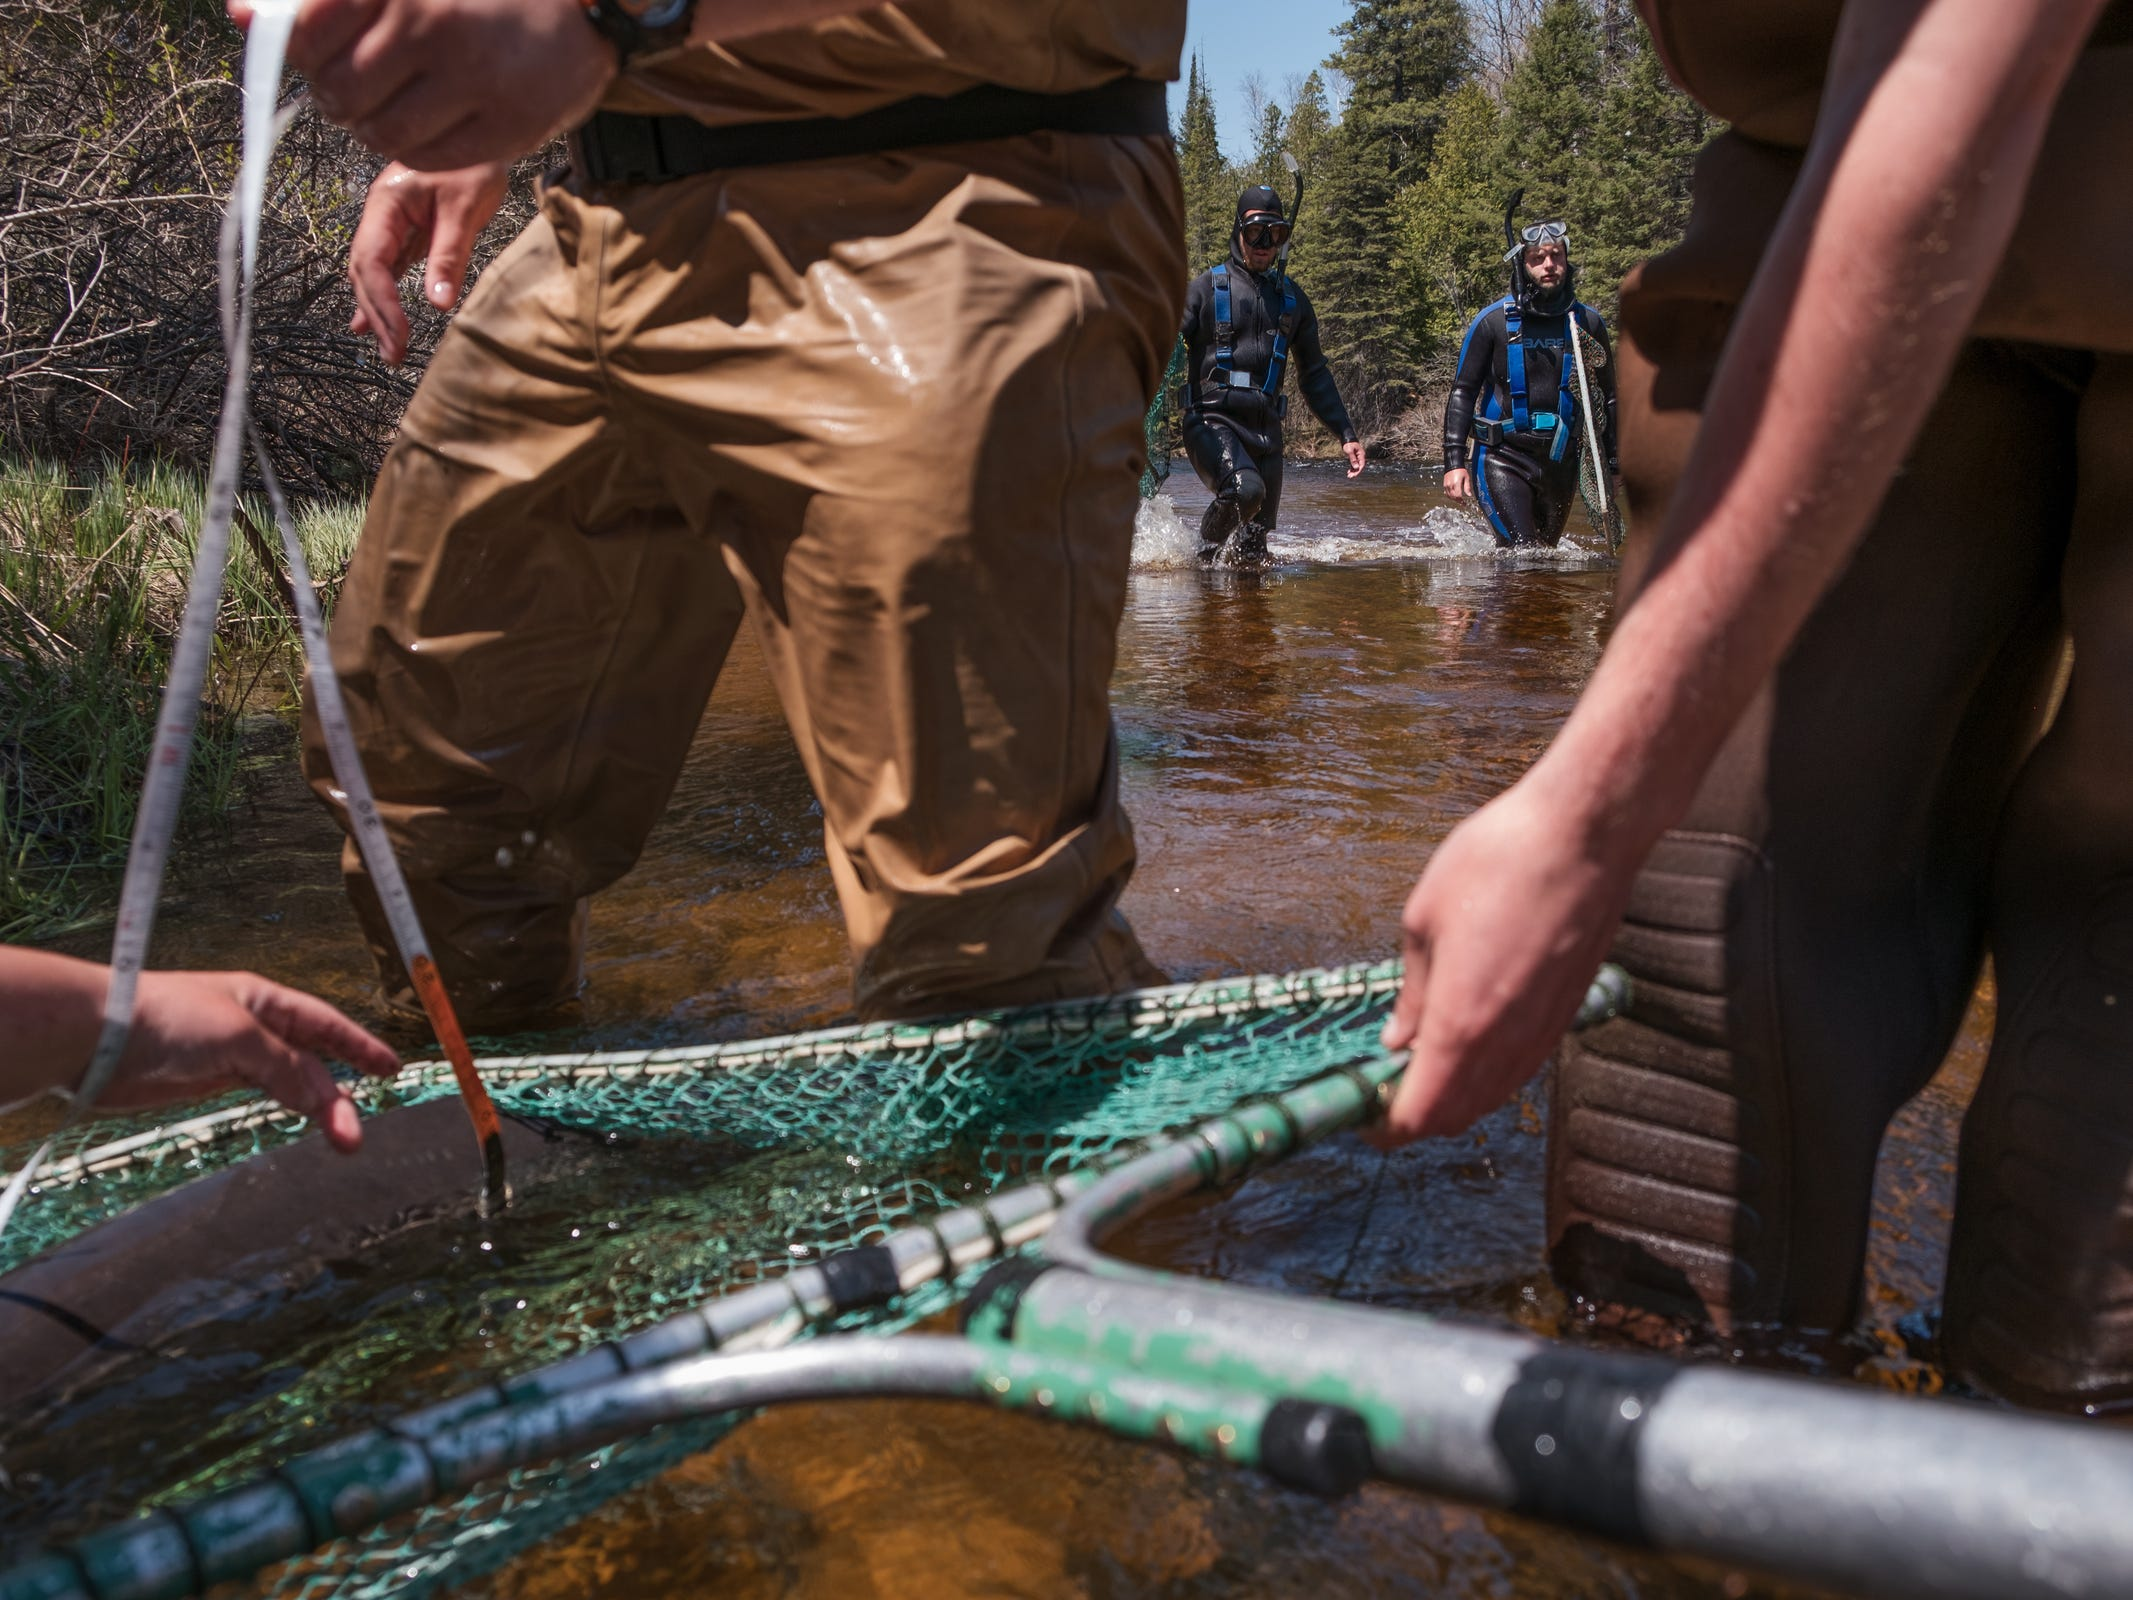 Researchers from Michigan State University work to gather samples and collect data from sturgeon mating in the Black River in Onaway on Wednesday, May 16, 2018. The group is conducting studies to help lead to restocking local habitats with sturgeon.